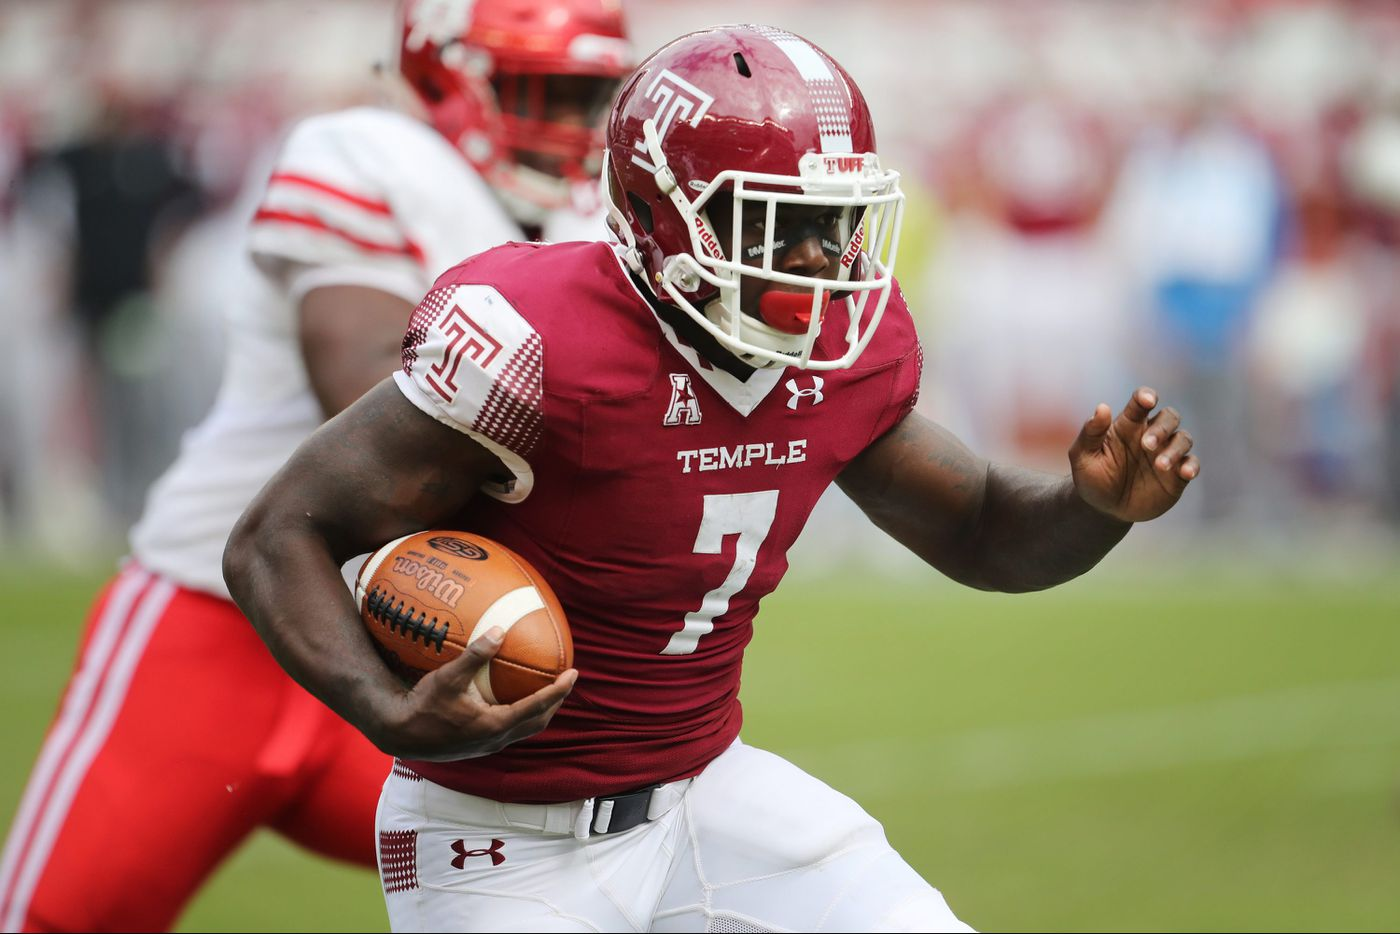 Temple picked to finish third in AAC East Division